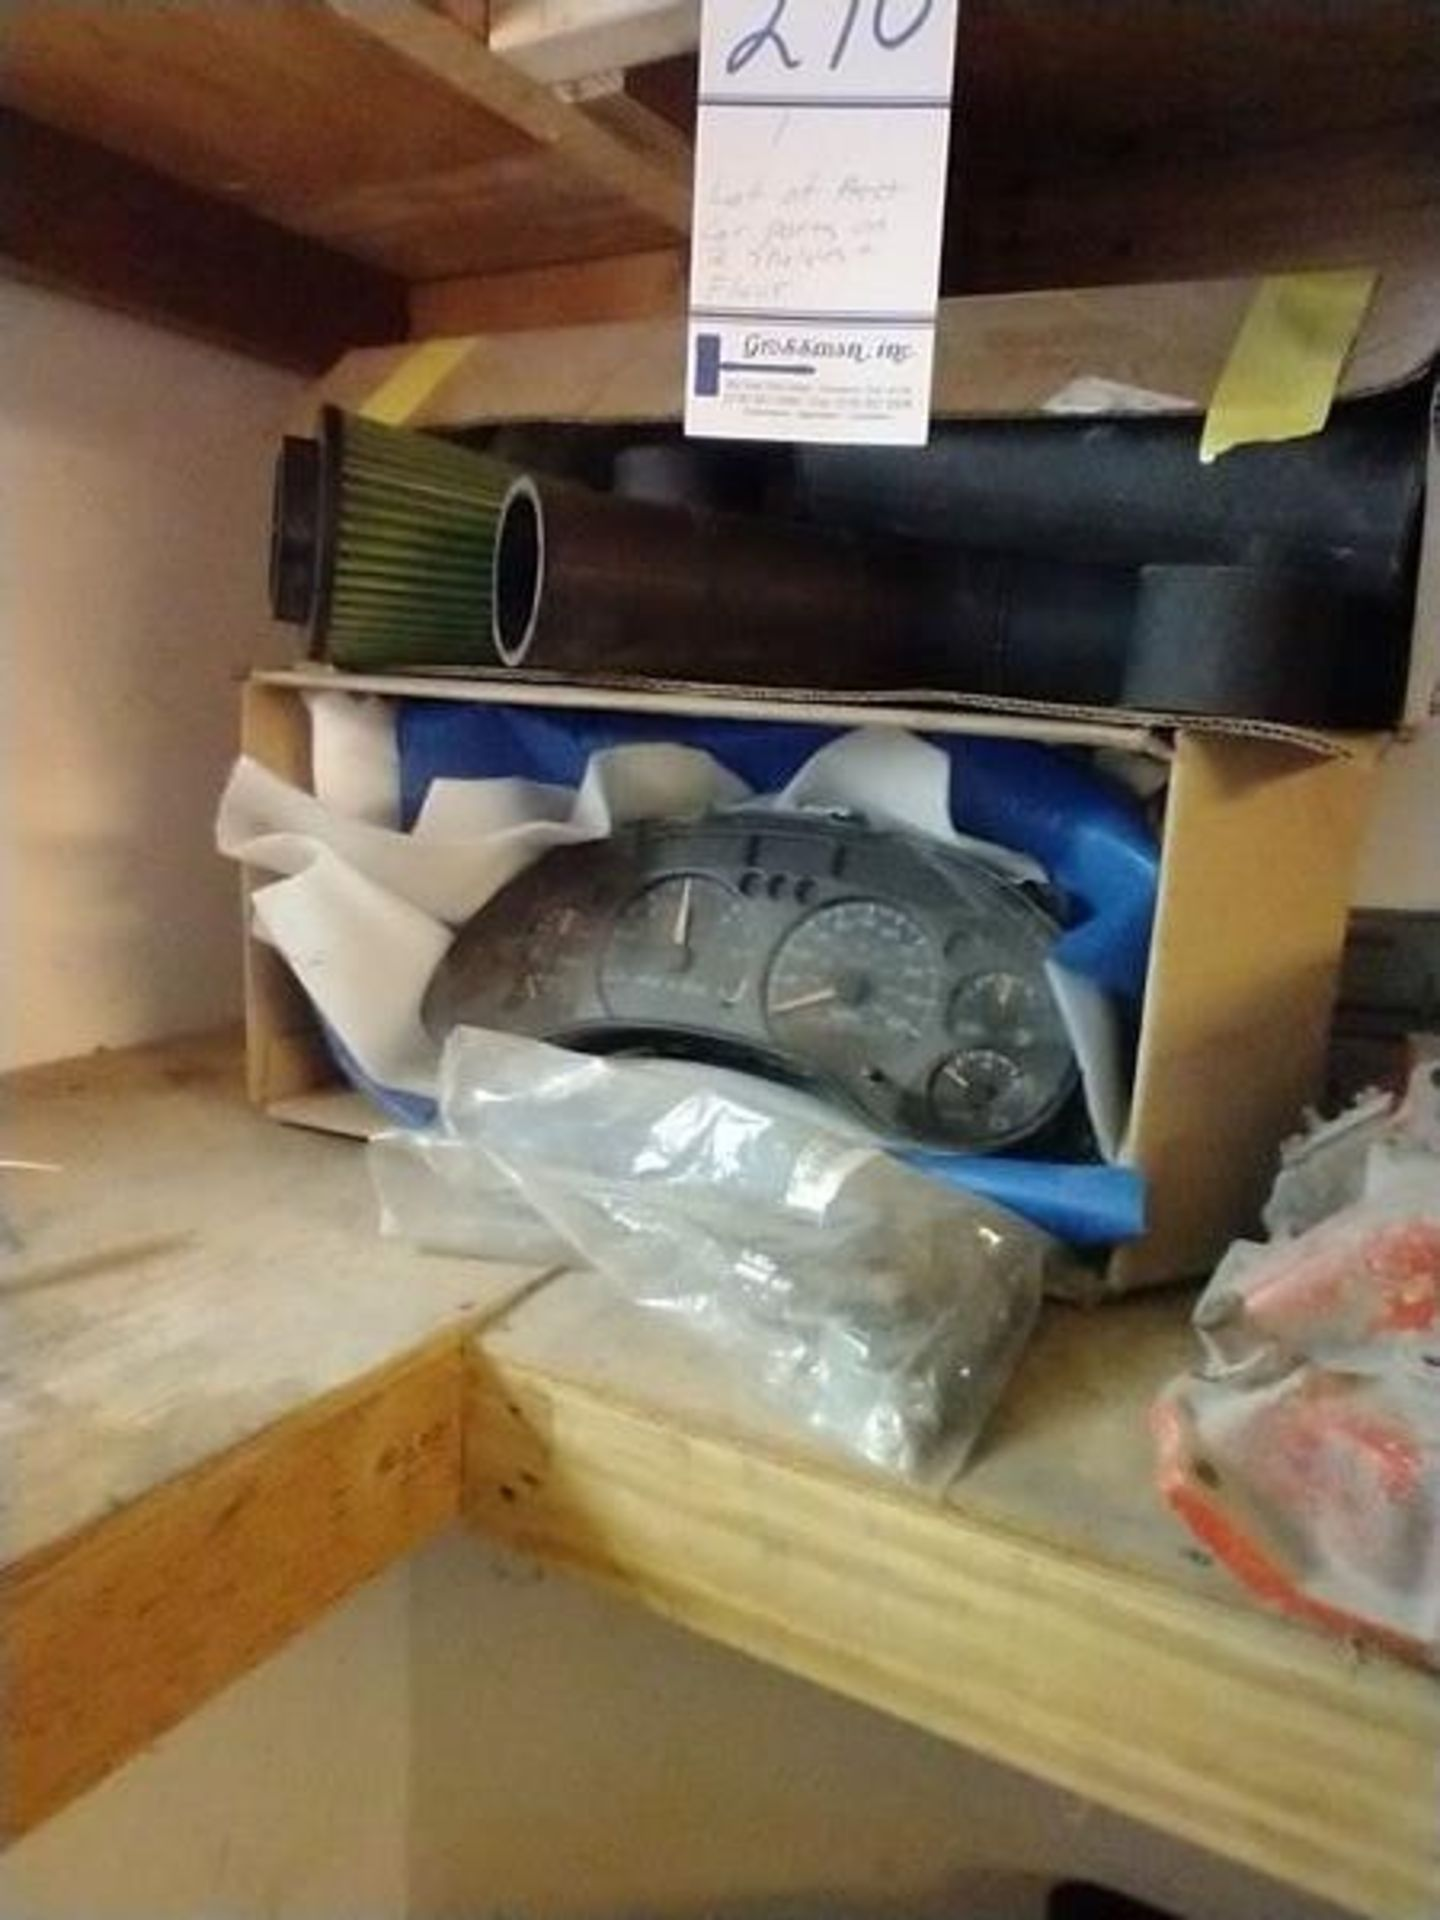 LOT OF ASSORTED CAR PARTS ON 2 SHELVES AND FLOOR - Image 3 of 23